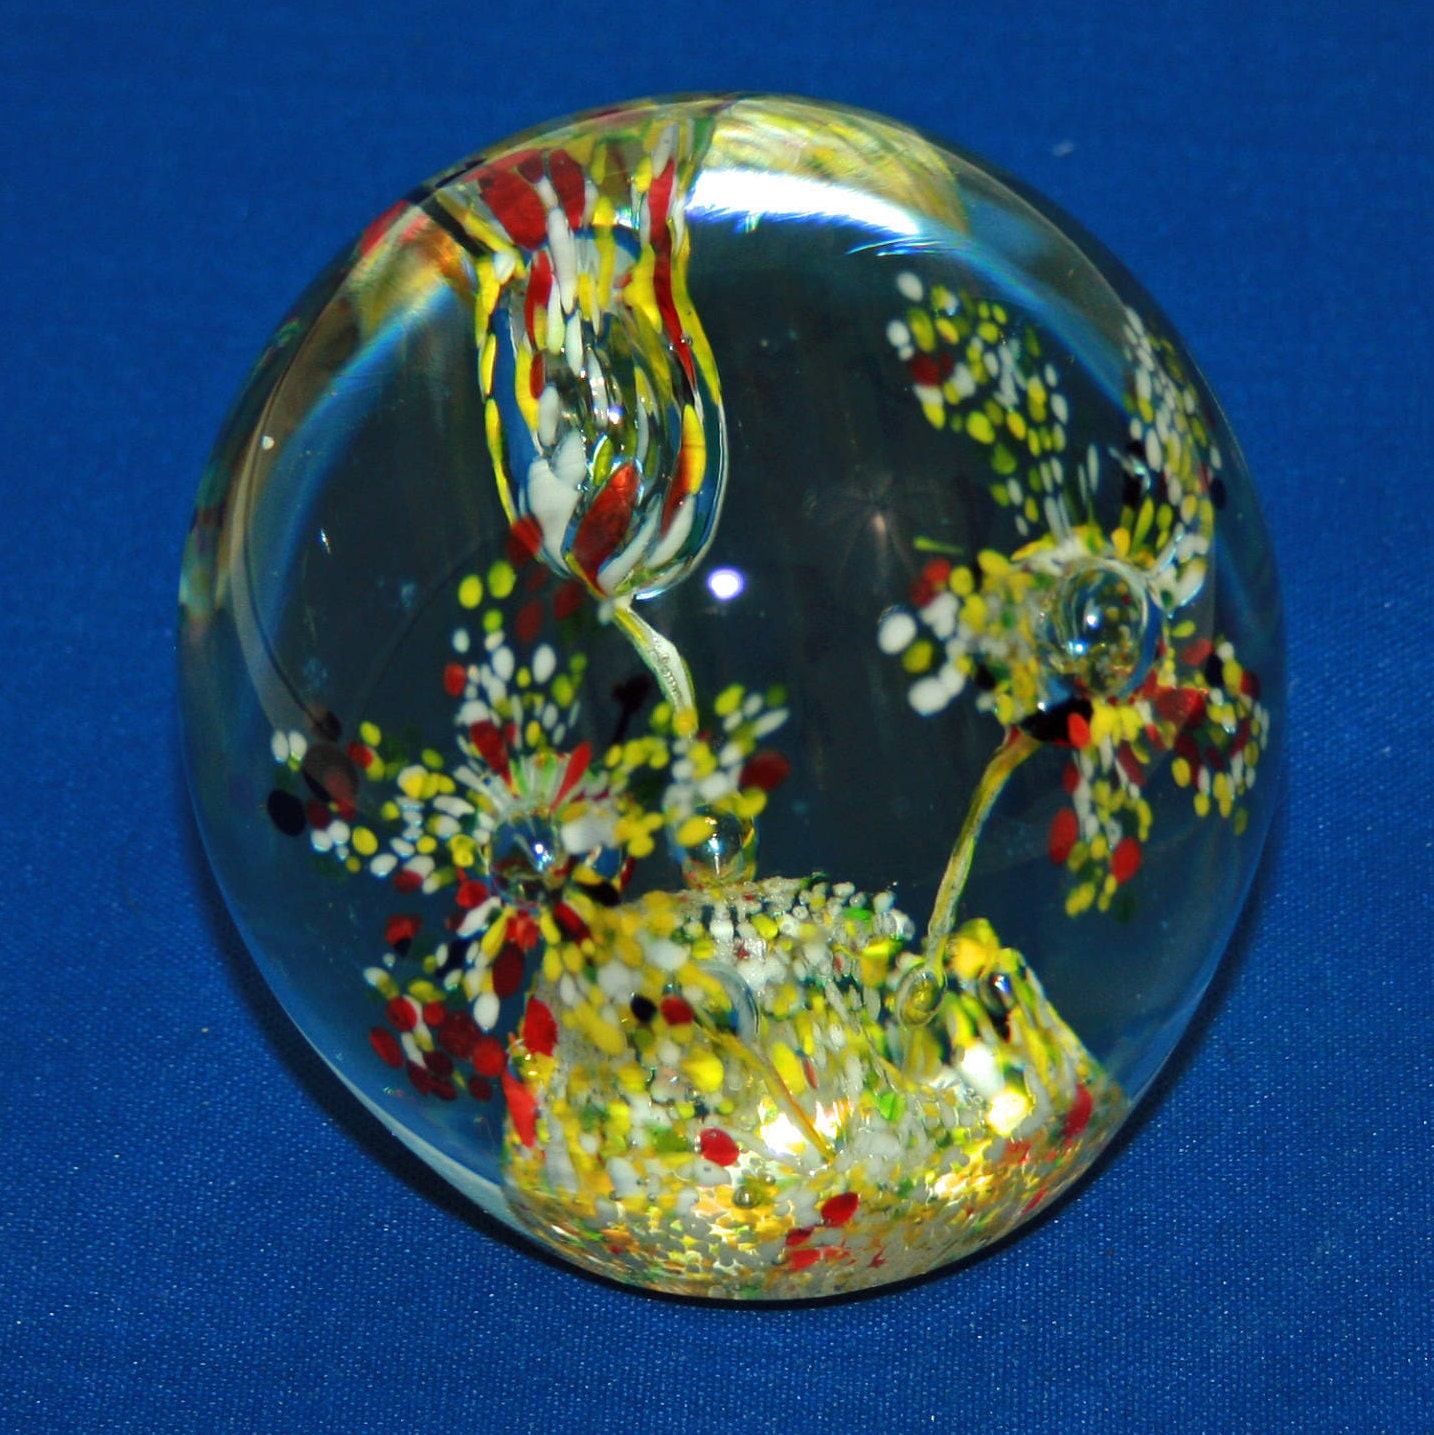 Vintage multi colored triple trumpet flower paperweight glass ball vintage multi colored triple trumpet flower paperweight glass ball presse papiers hand made mouth blown paper weight knick knack mightylinksfo